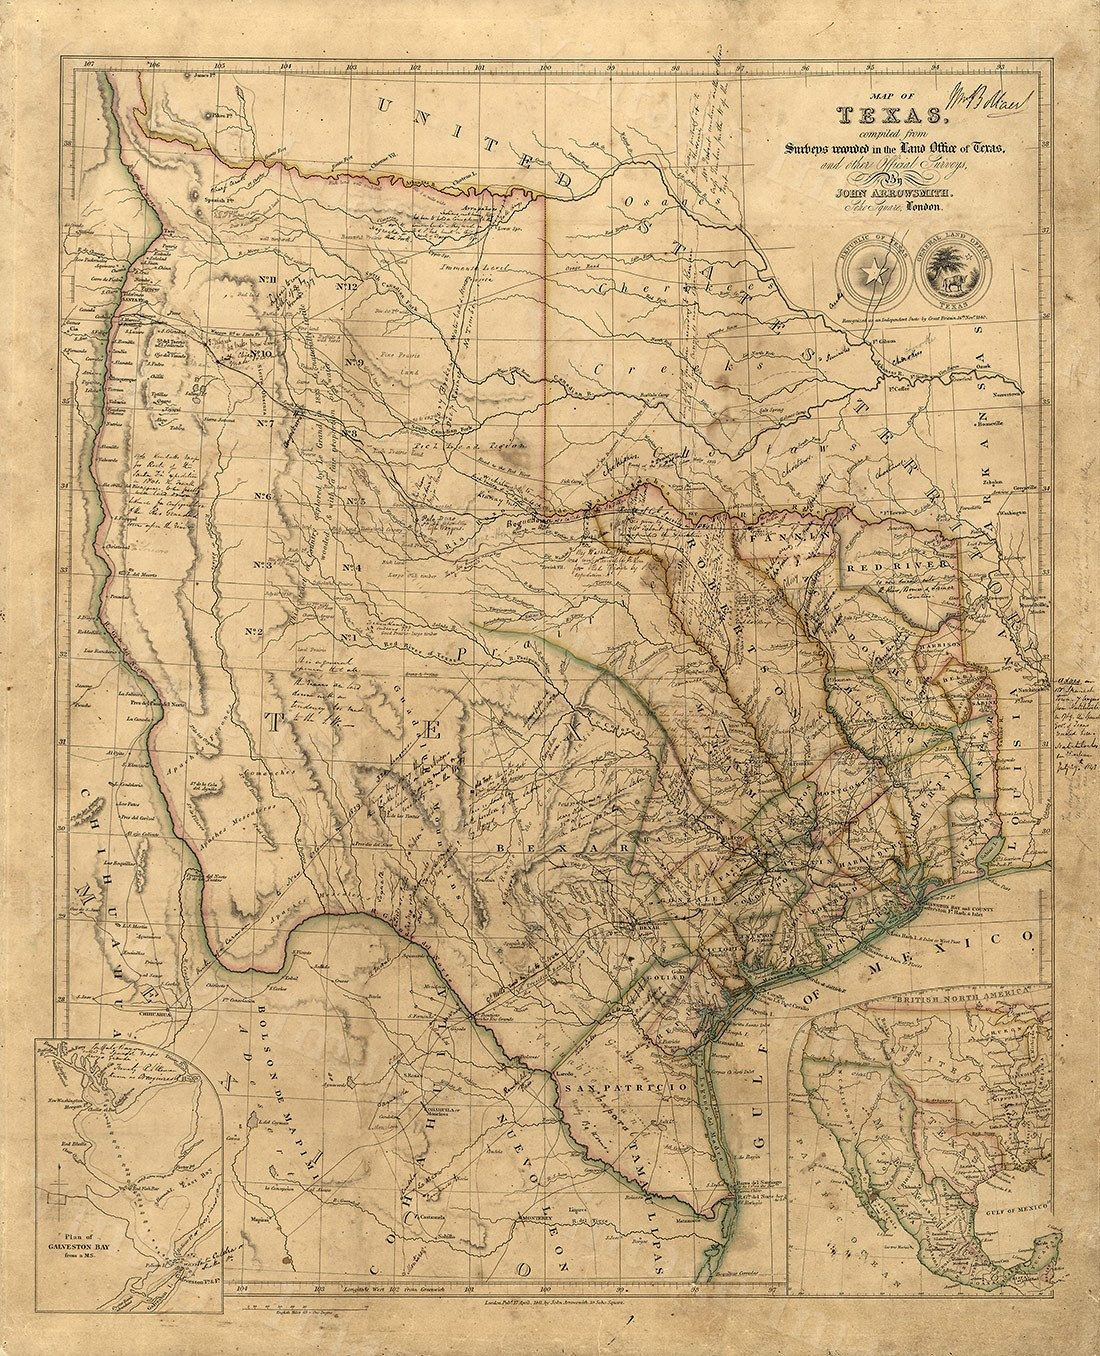 Old Texas Wall Map 1841 Historical Texas Map Antique Decorator Style - Antique Texas Map Reproductions